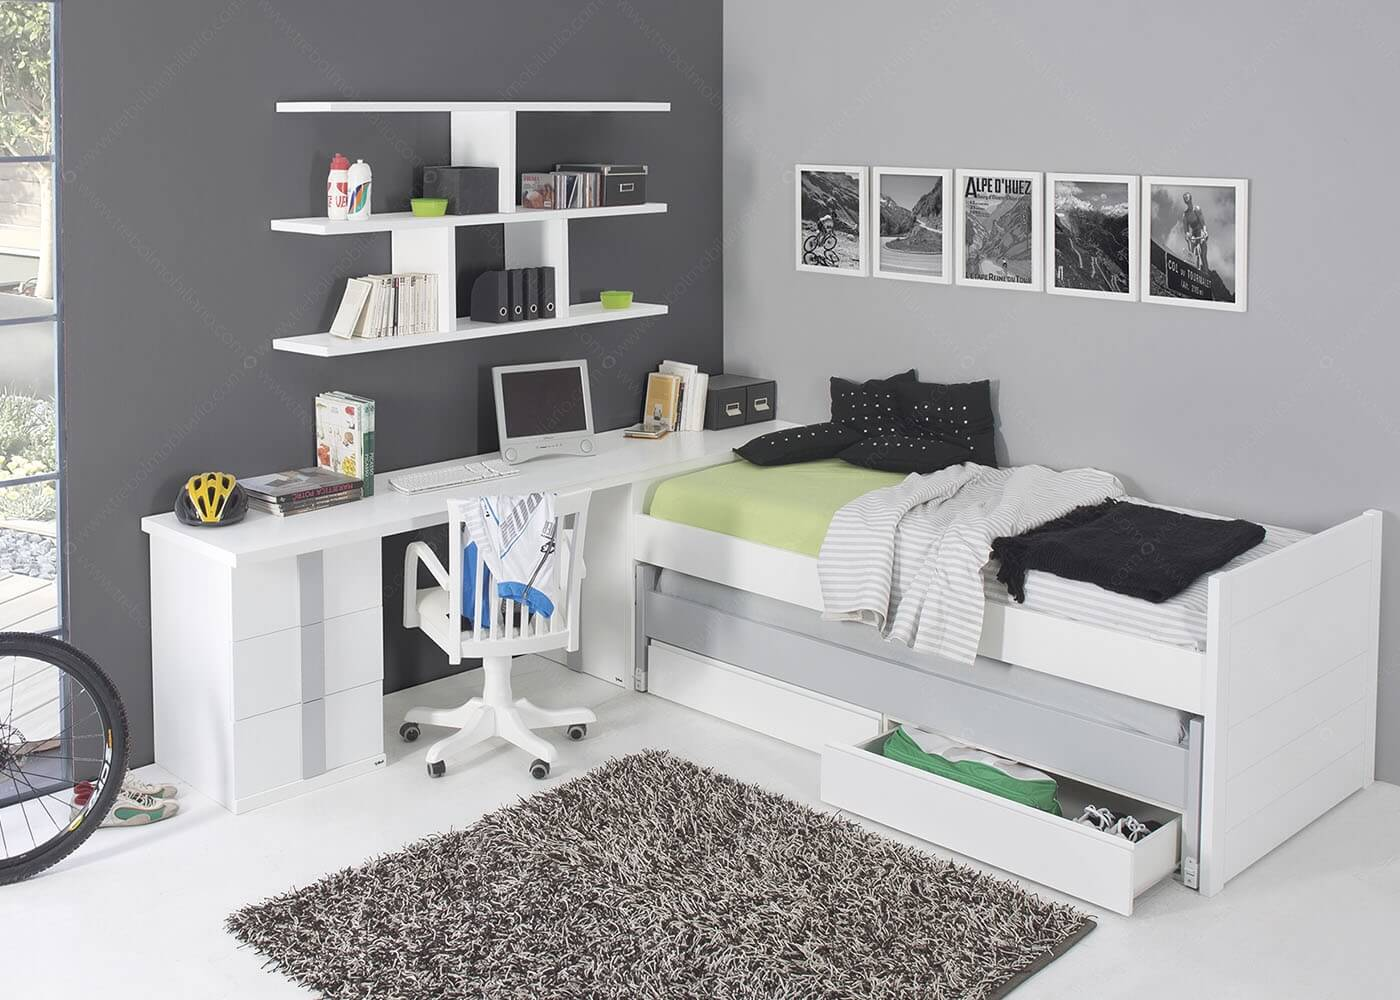 comment am nager un studio une chambre d tudiant tout en optimisant l espace. Black Bedroom Furniture Sets. Home Design Ideas